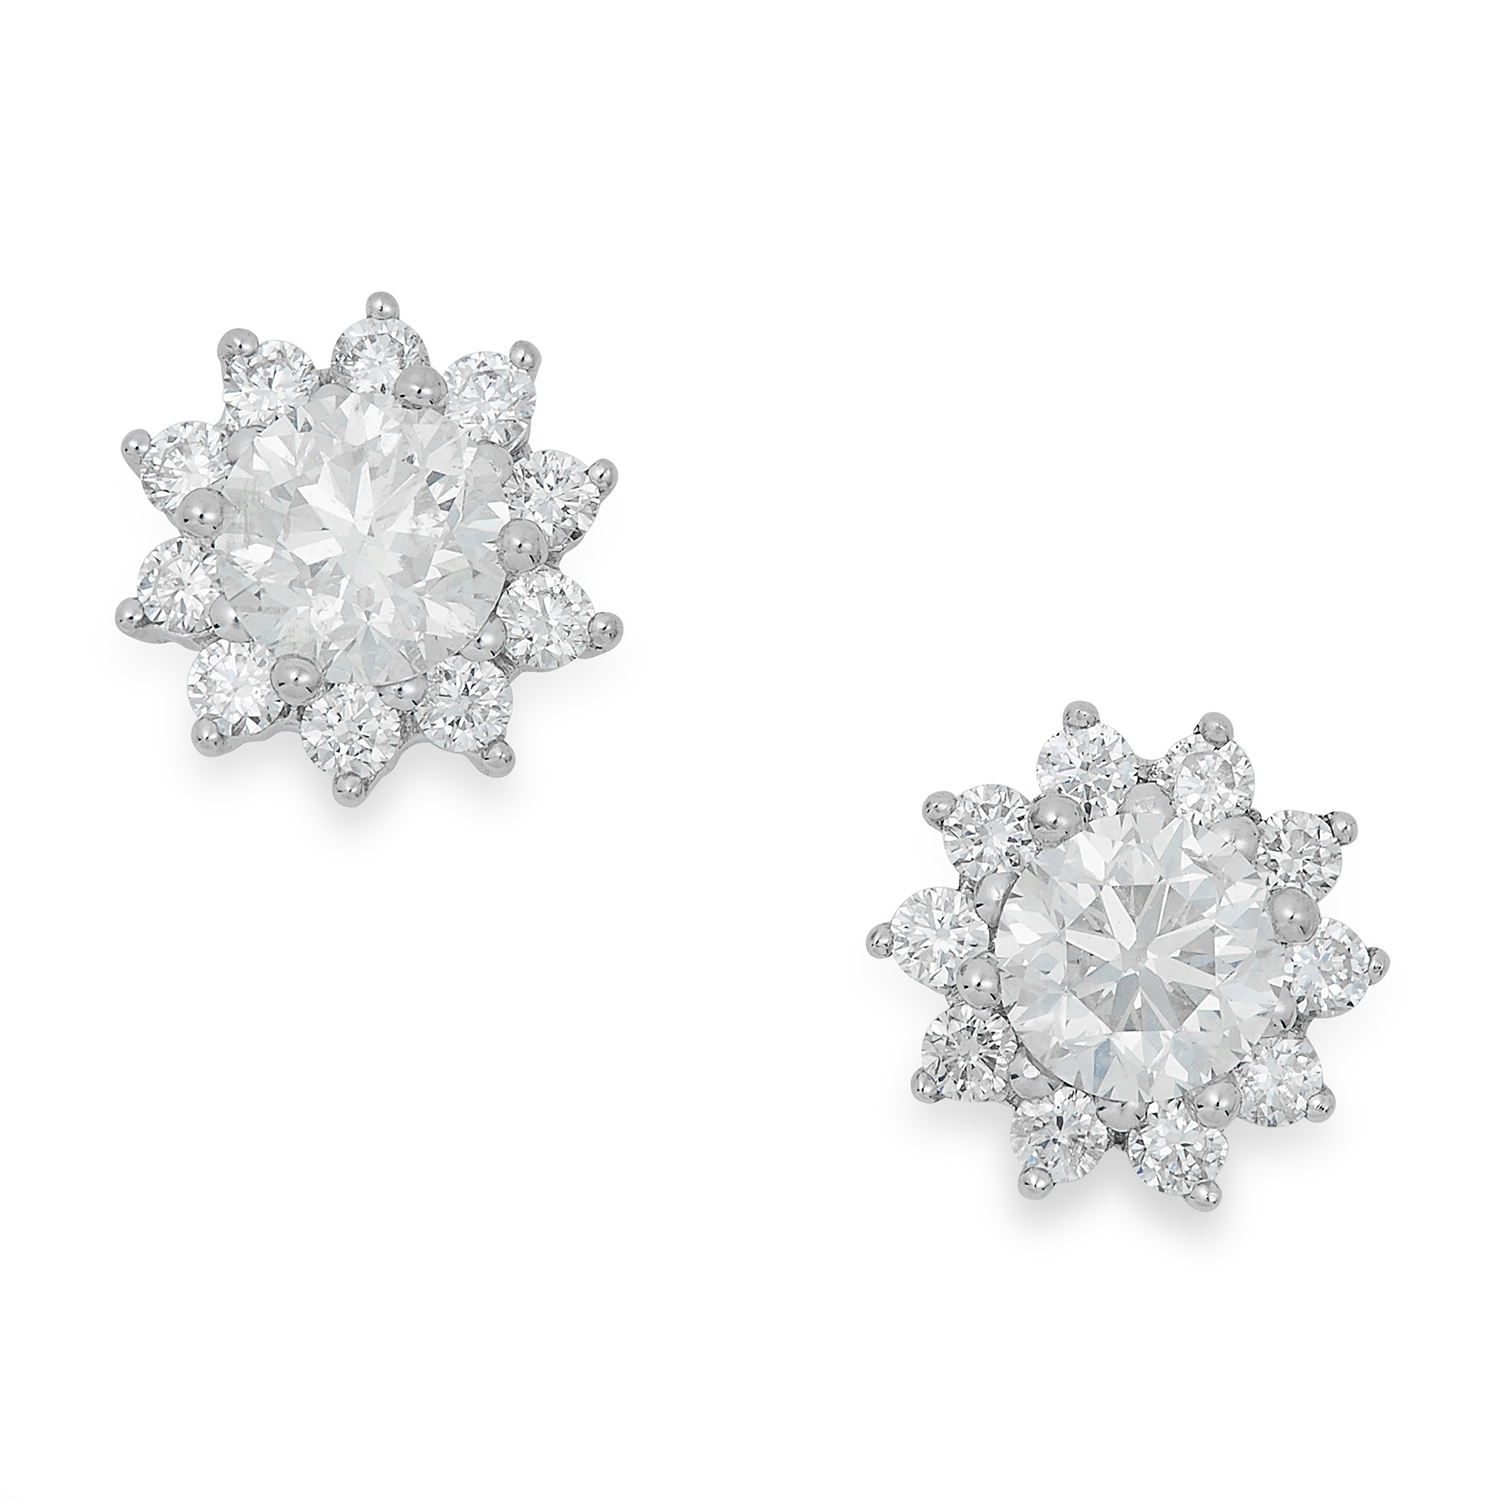 0.98 CARAT DIAMOND STUD EARRINGS each set with a cluster of round cut diamonds, 2.9g.